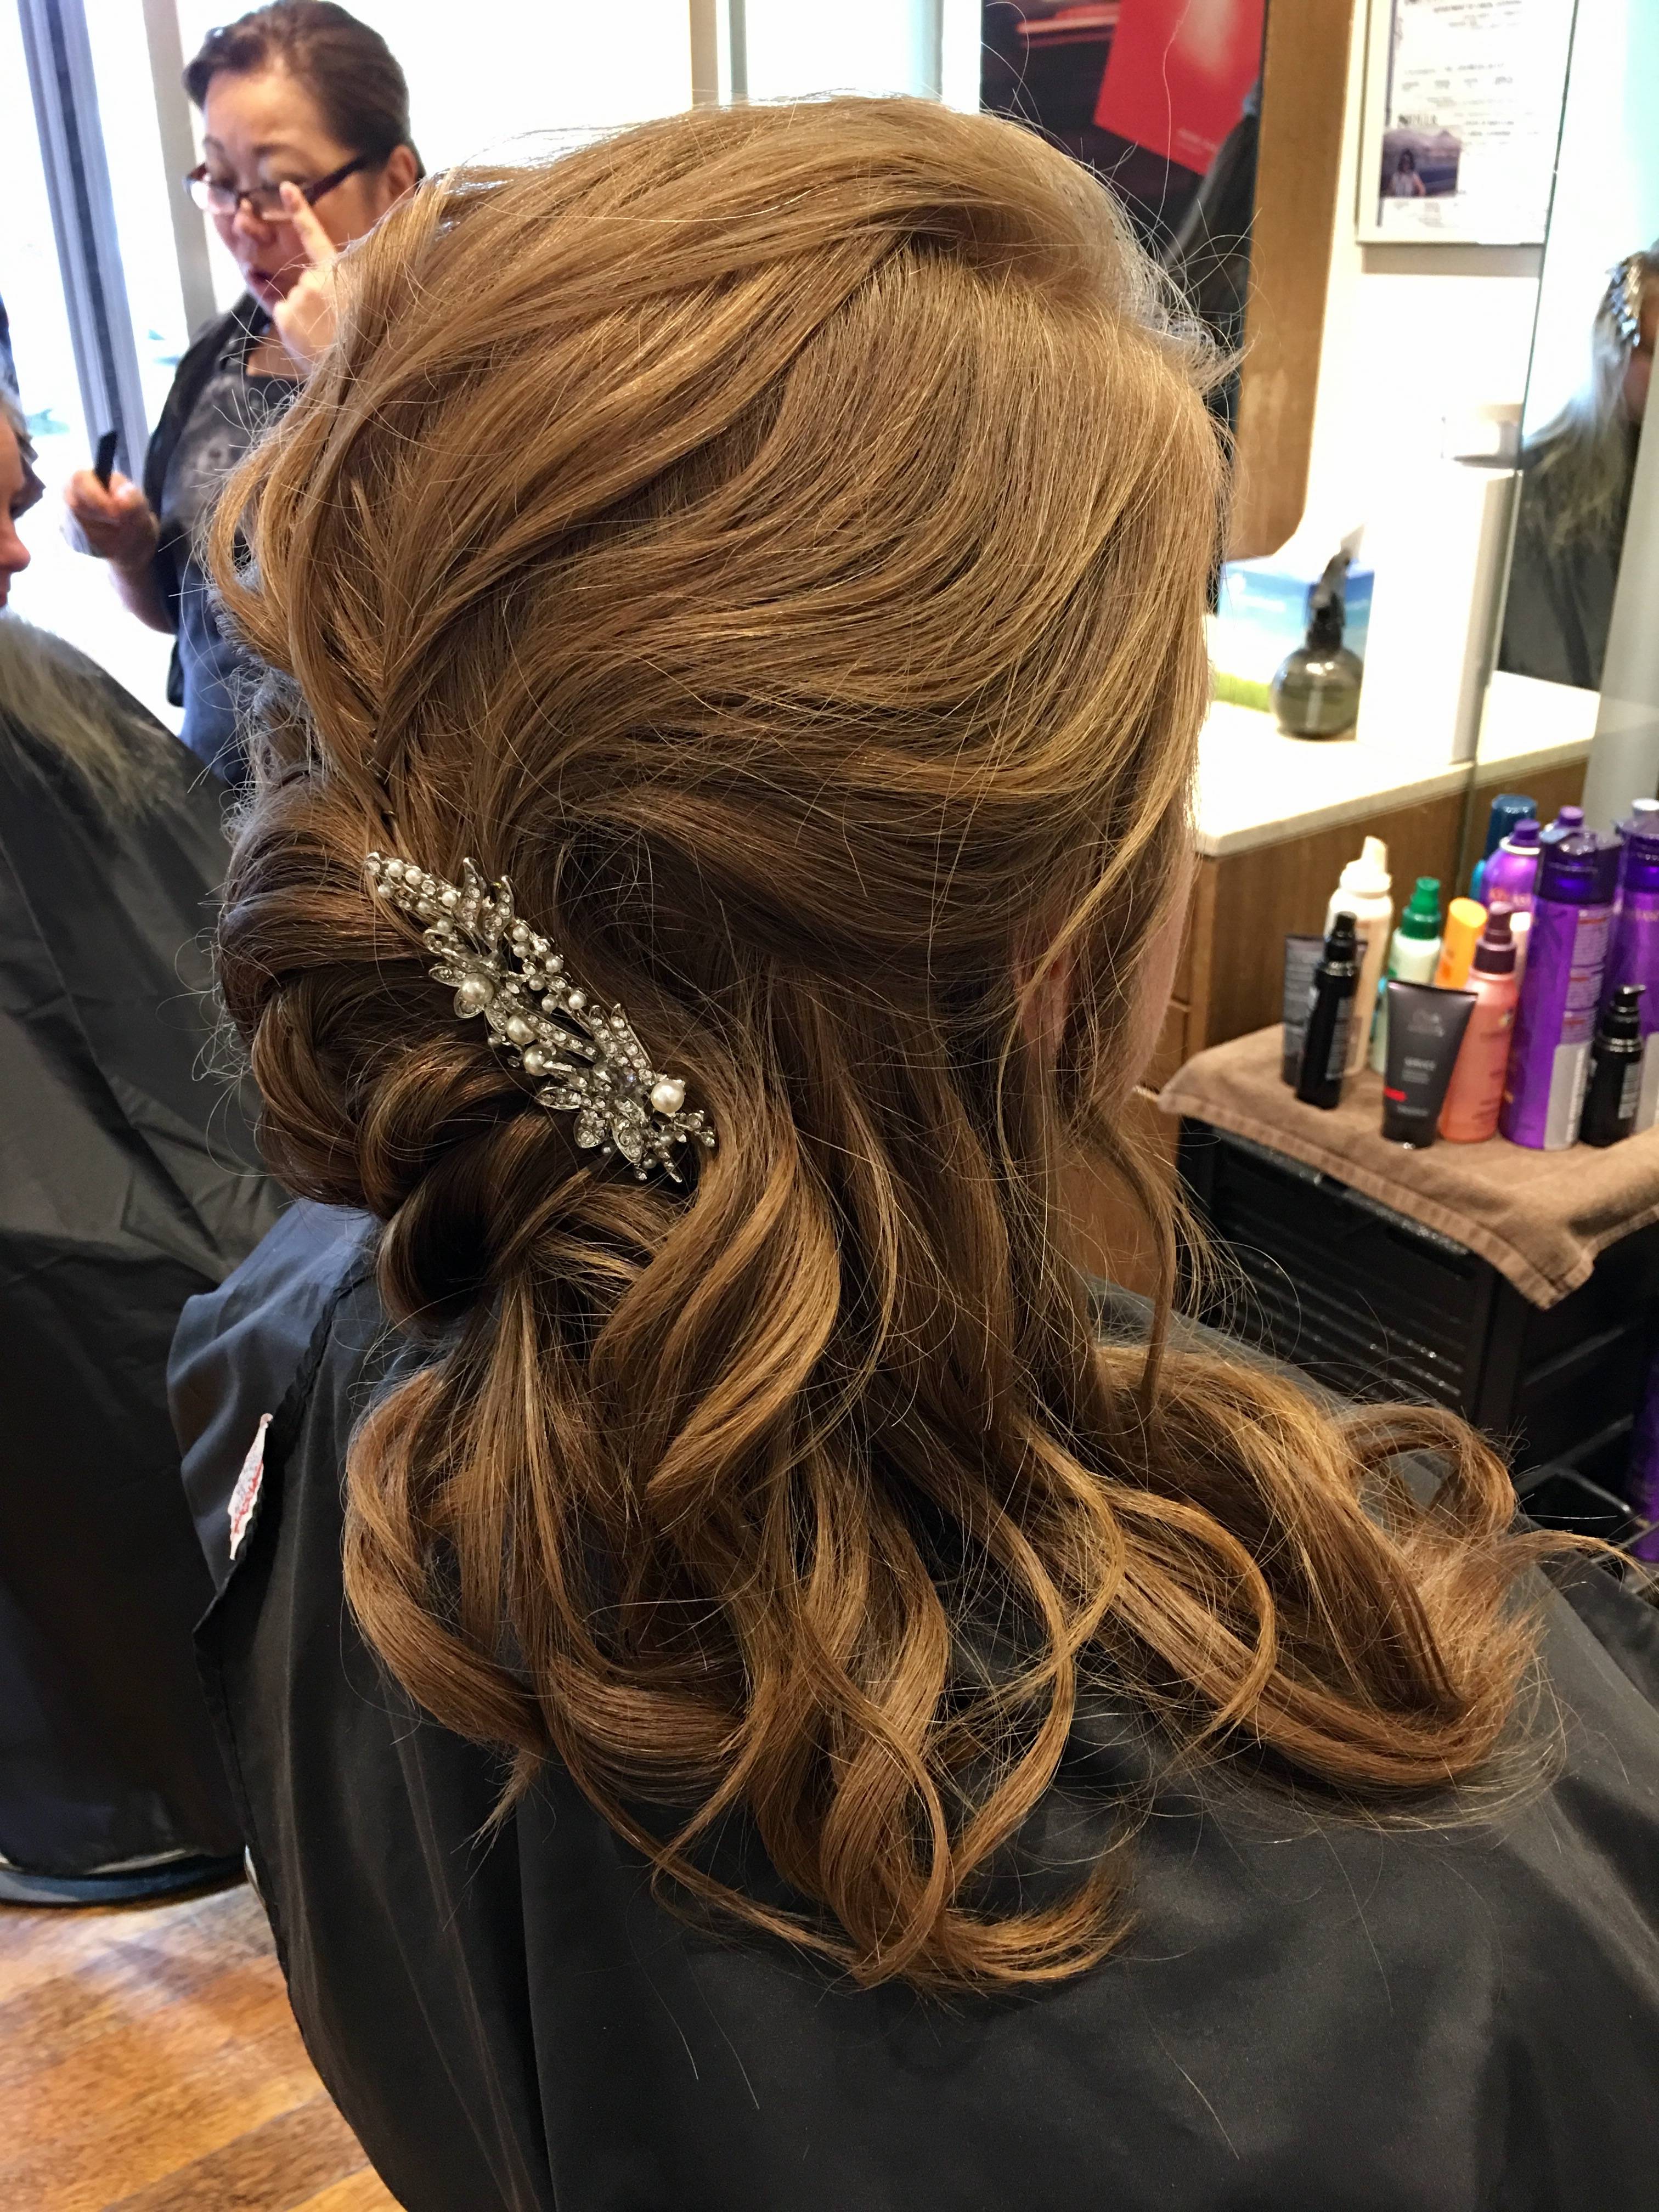 about hair – hair salon / hair studio / hair stylist